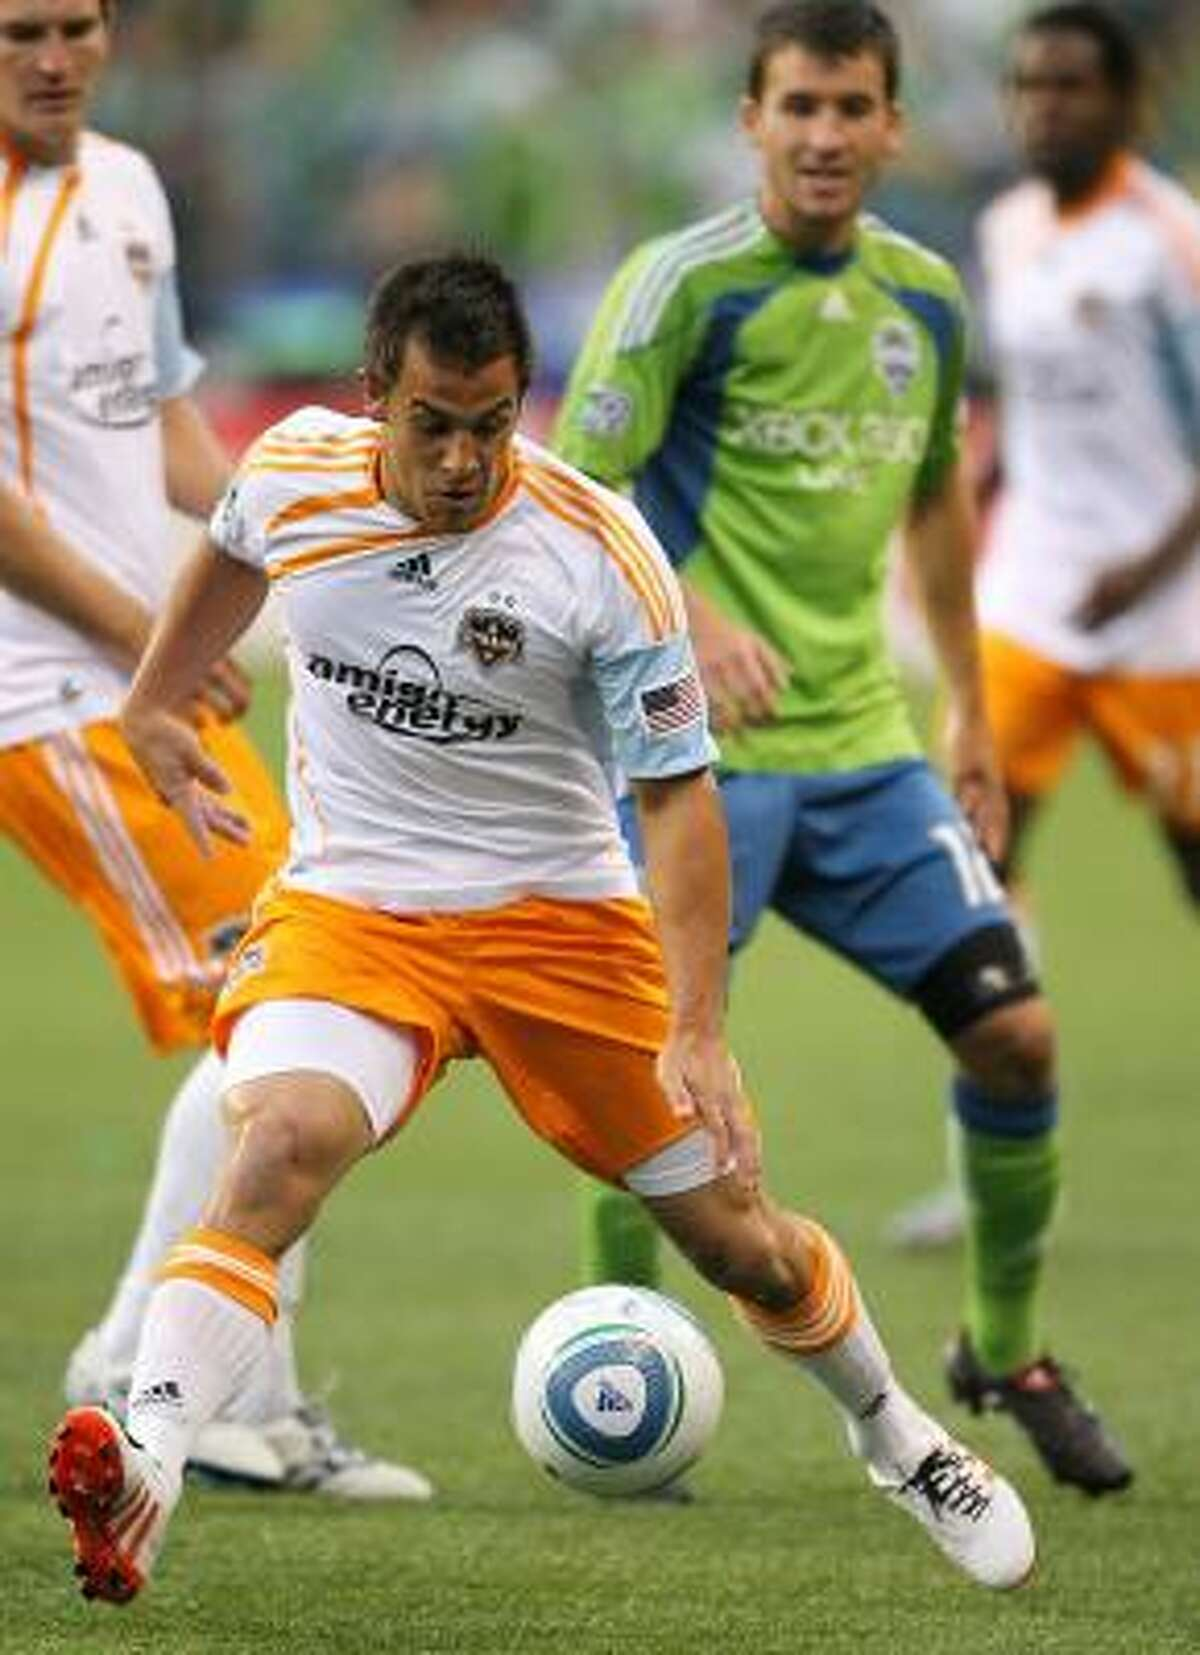 Dynamo midfielder Danny Cruz dribbles against Sounders defender Nathan Sturgis.